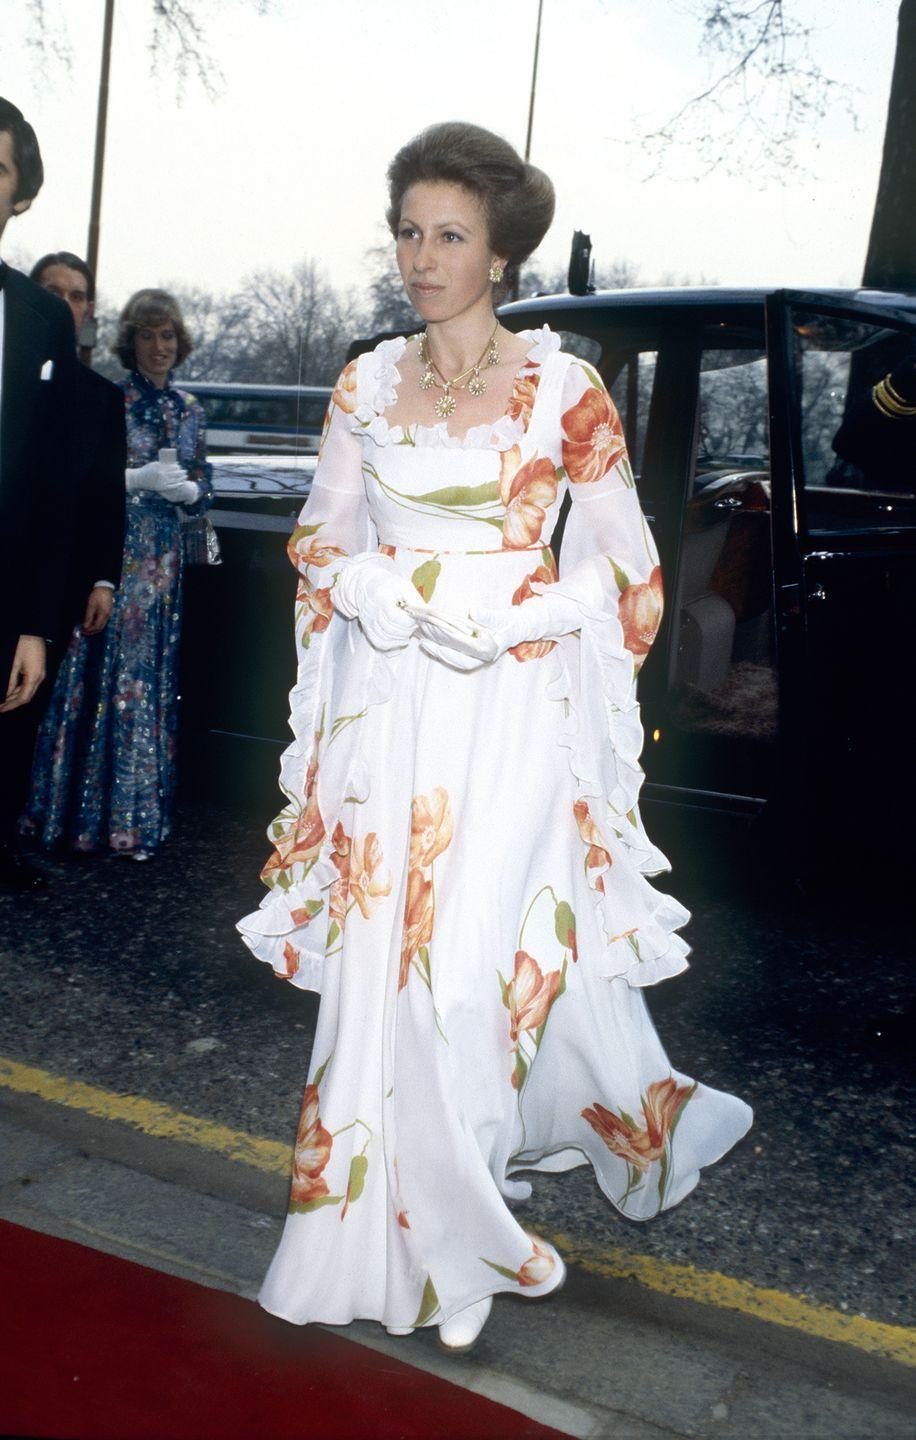 <p>Princess Anne, the Queen's only daughter, wore a floral ruffled gown for an event at the Dorchester Hotel in London. The Princess finished the look off with elegant white evening gloves. </p>